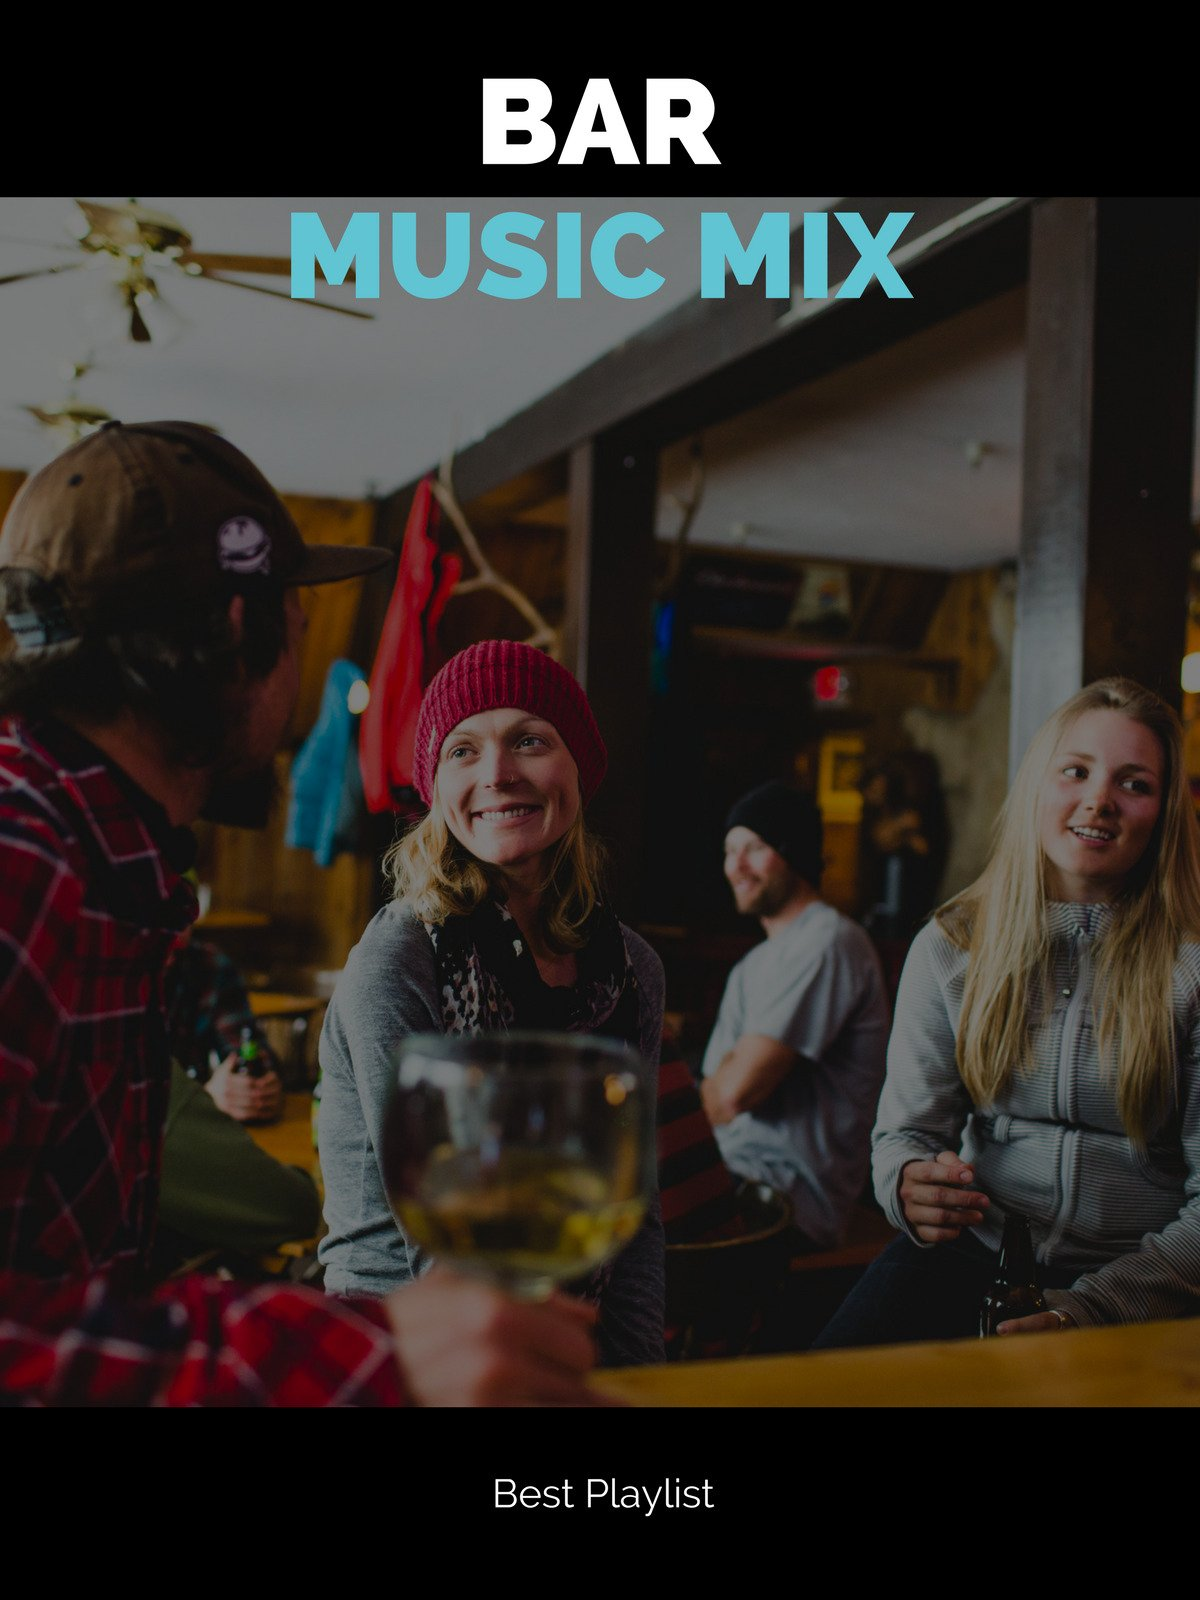 Bar Music Mix